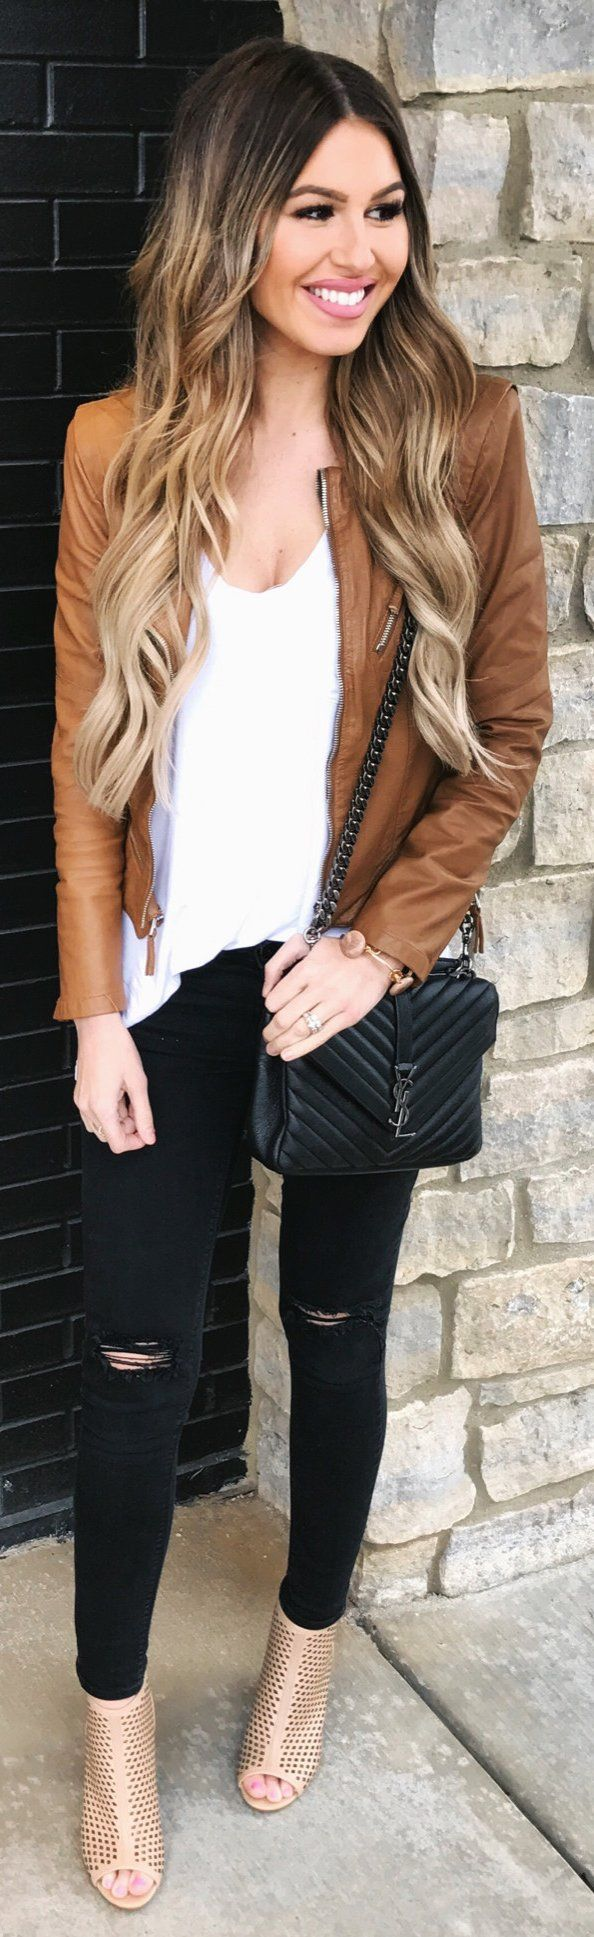 refined spring outfits /  Brown Leather Jacket / White Top / Black Ripped Skinny Jeans